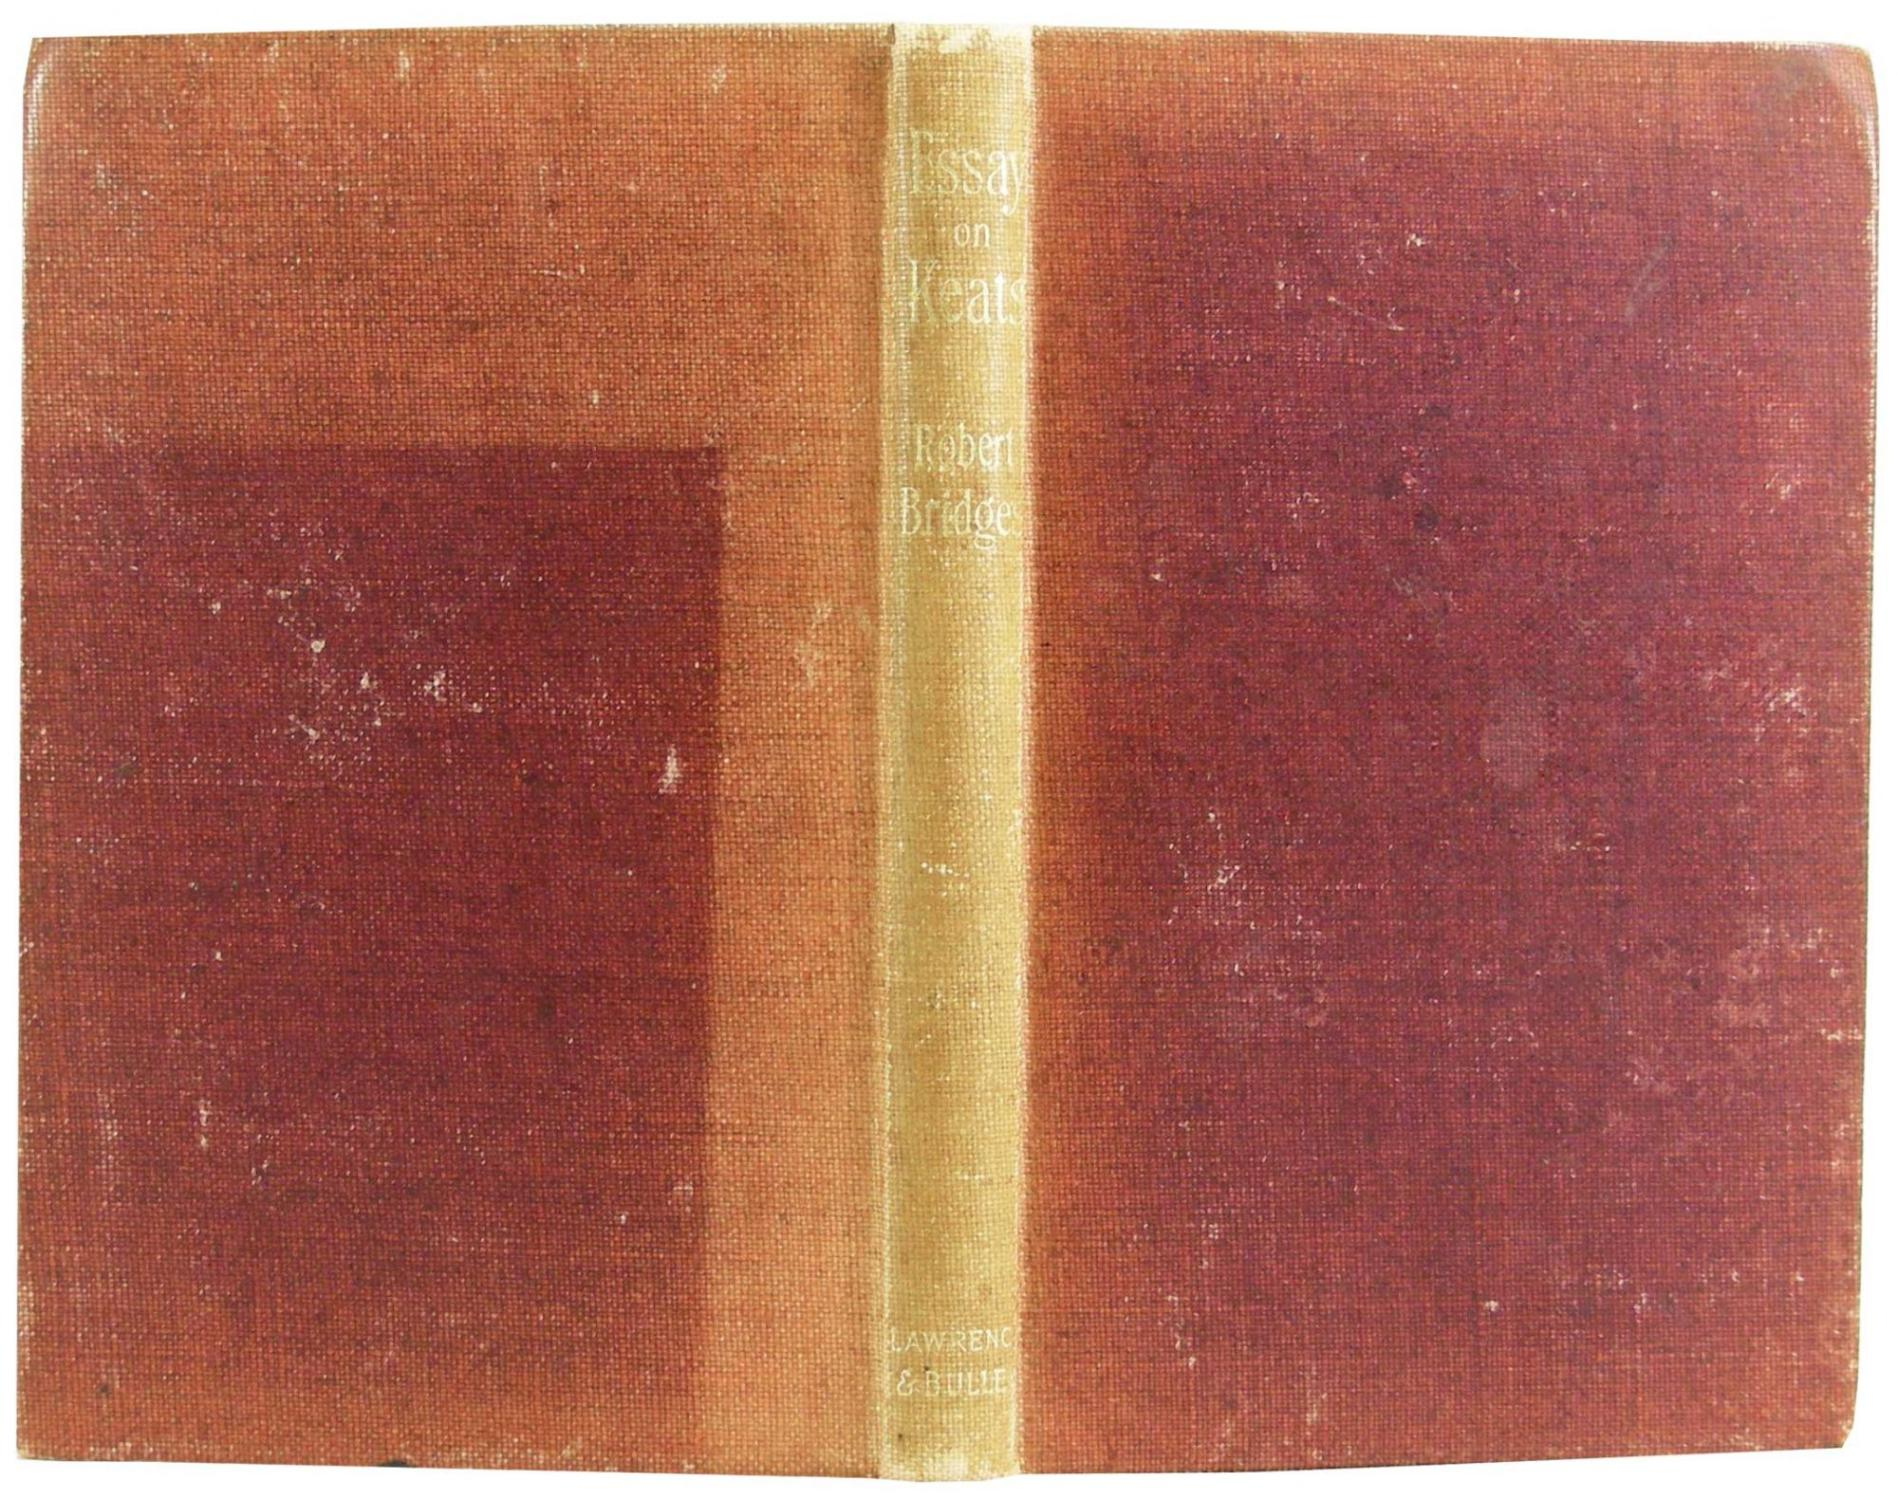 john keats a critical essay by bridges robert privately printed john keats a critical essay bridges robert